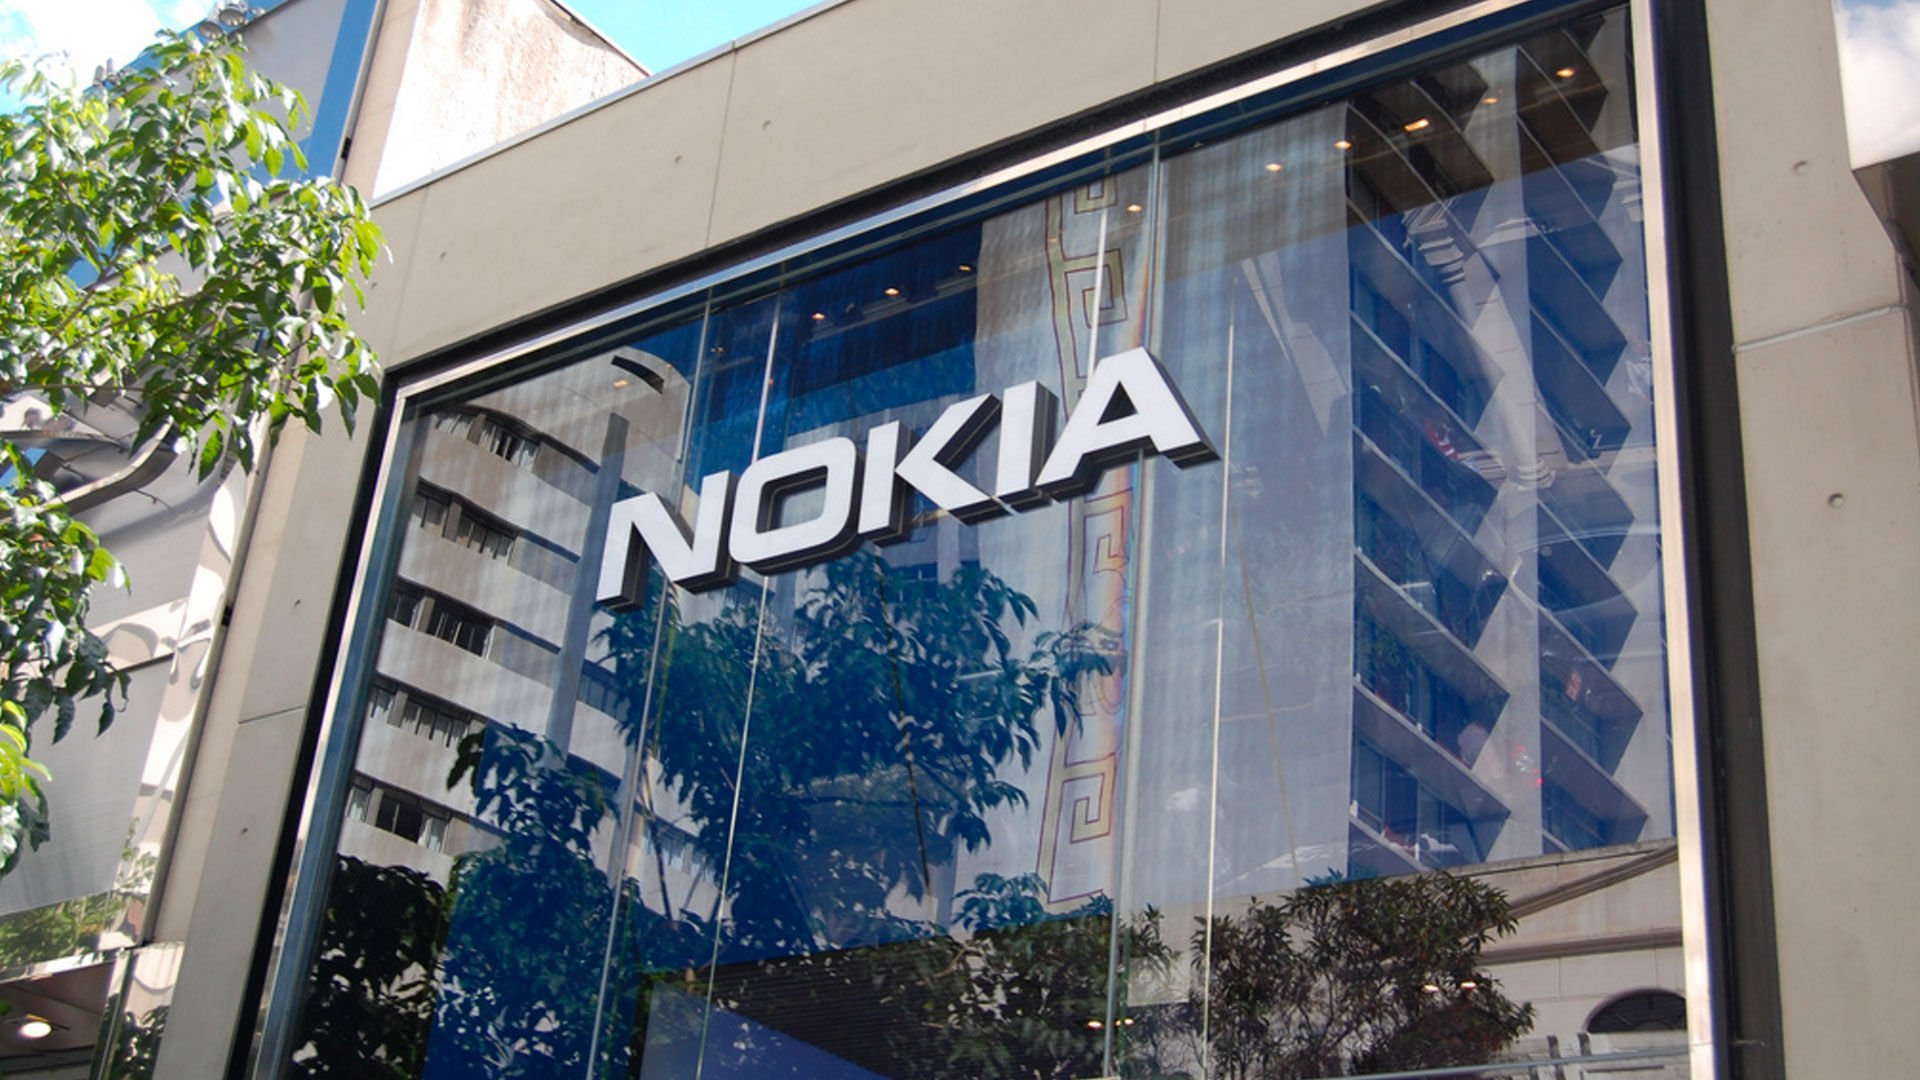 Nokia has become a 5G supplier for Telia in Scandinavia and the Baltics